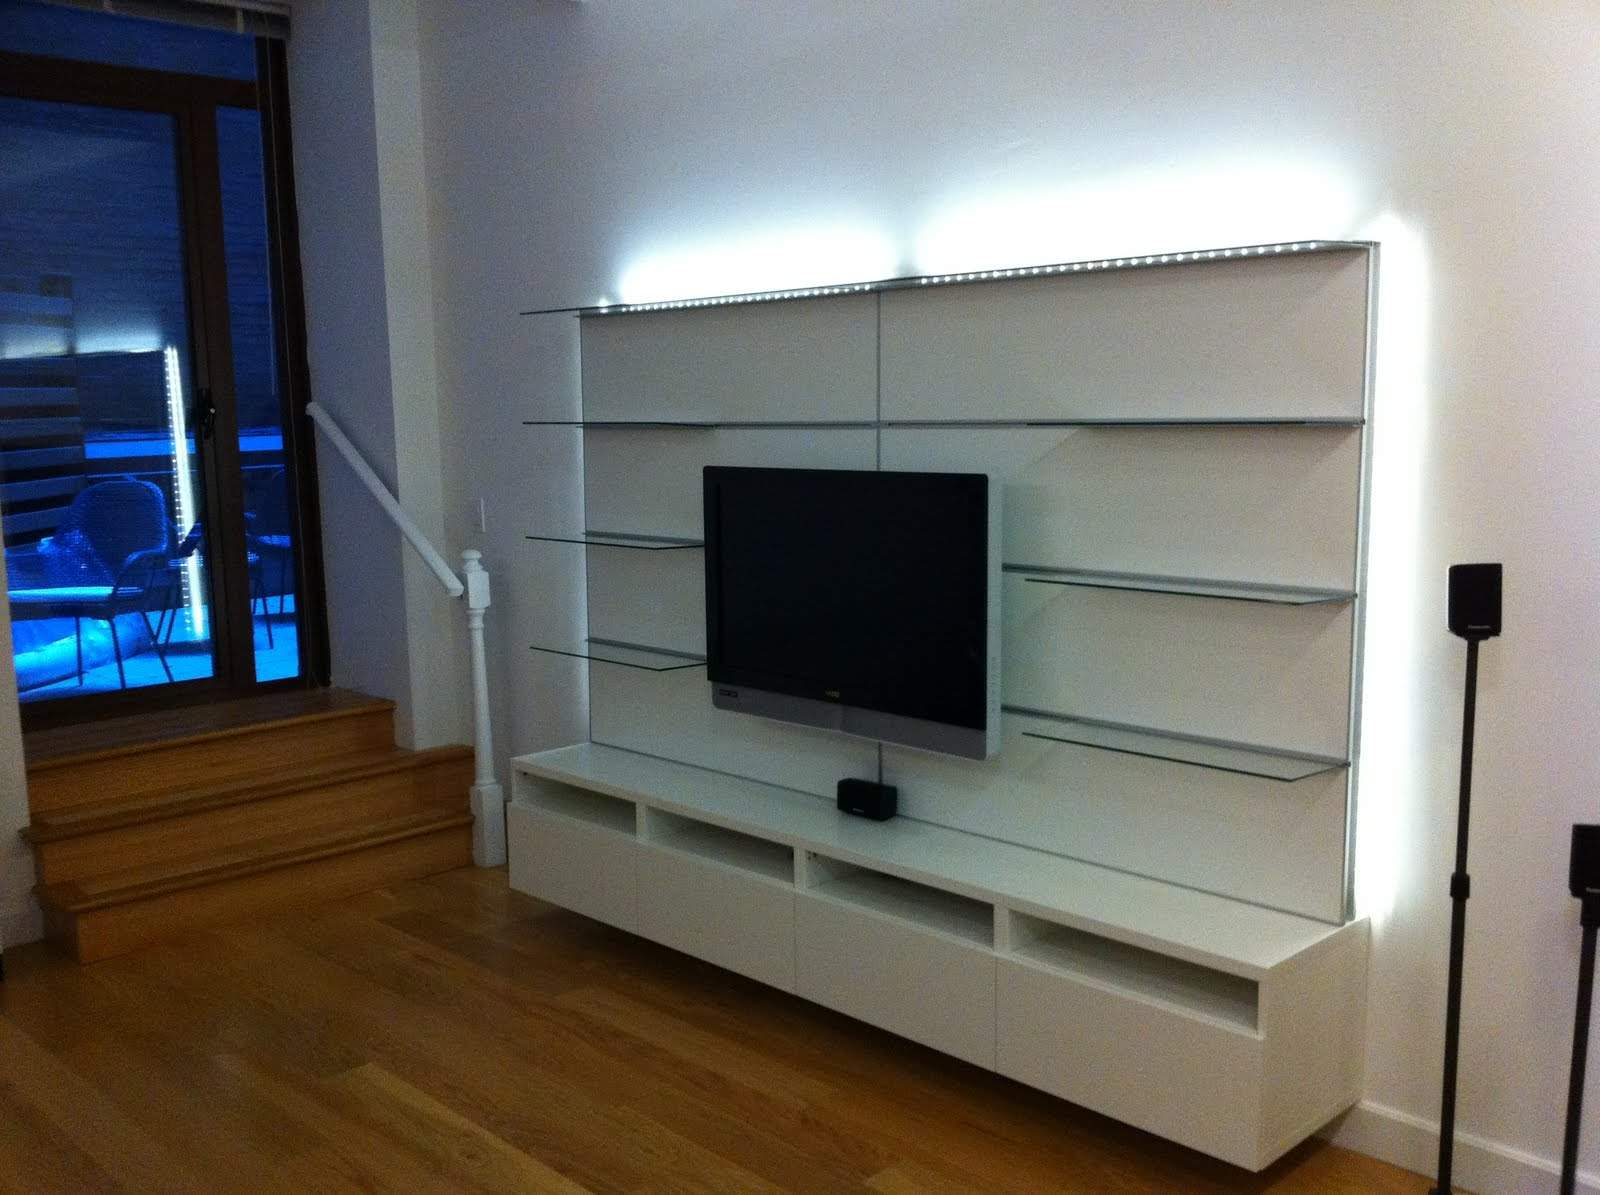 Furniture Assembly Service - Blog: Unofficial IKEA Furniture ...